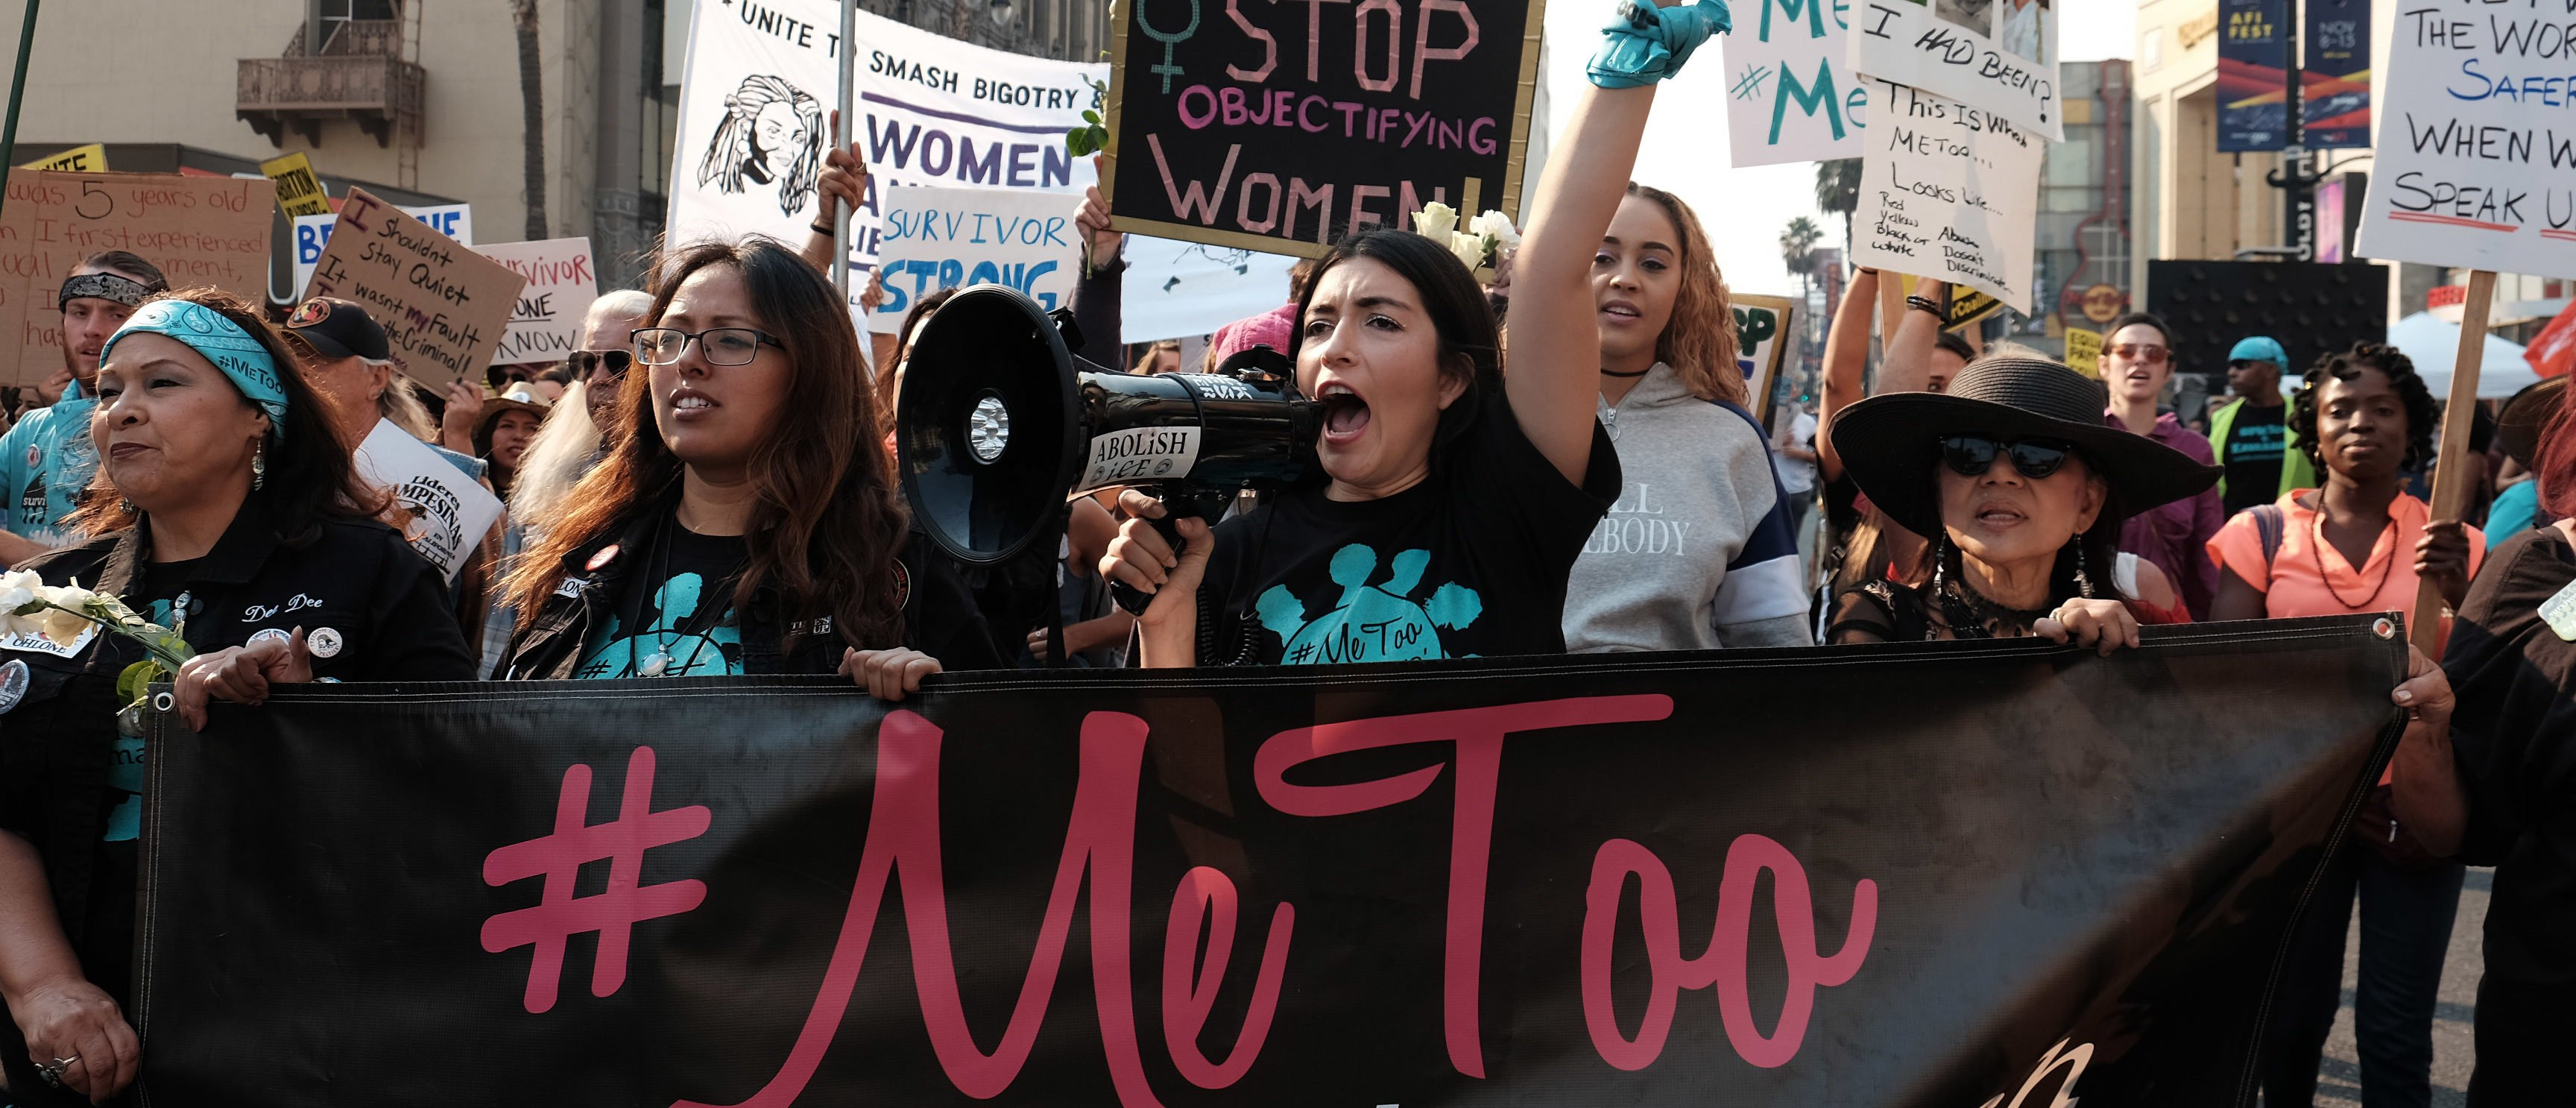 The Left's Lengthy #MeToo History | The Daily Caller